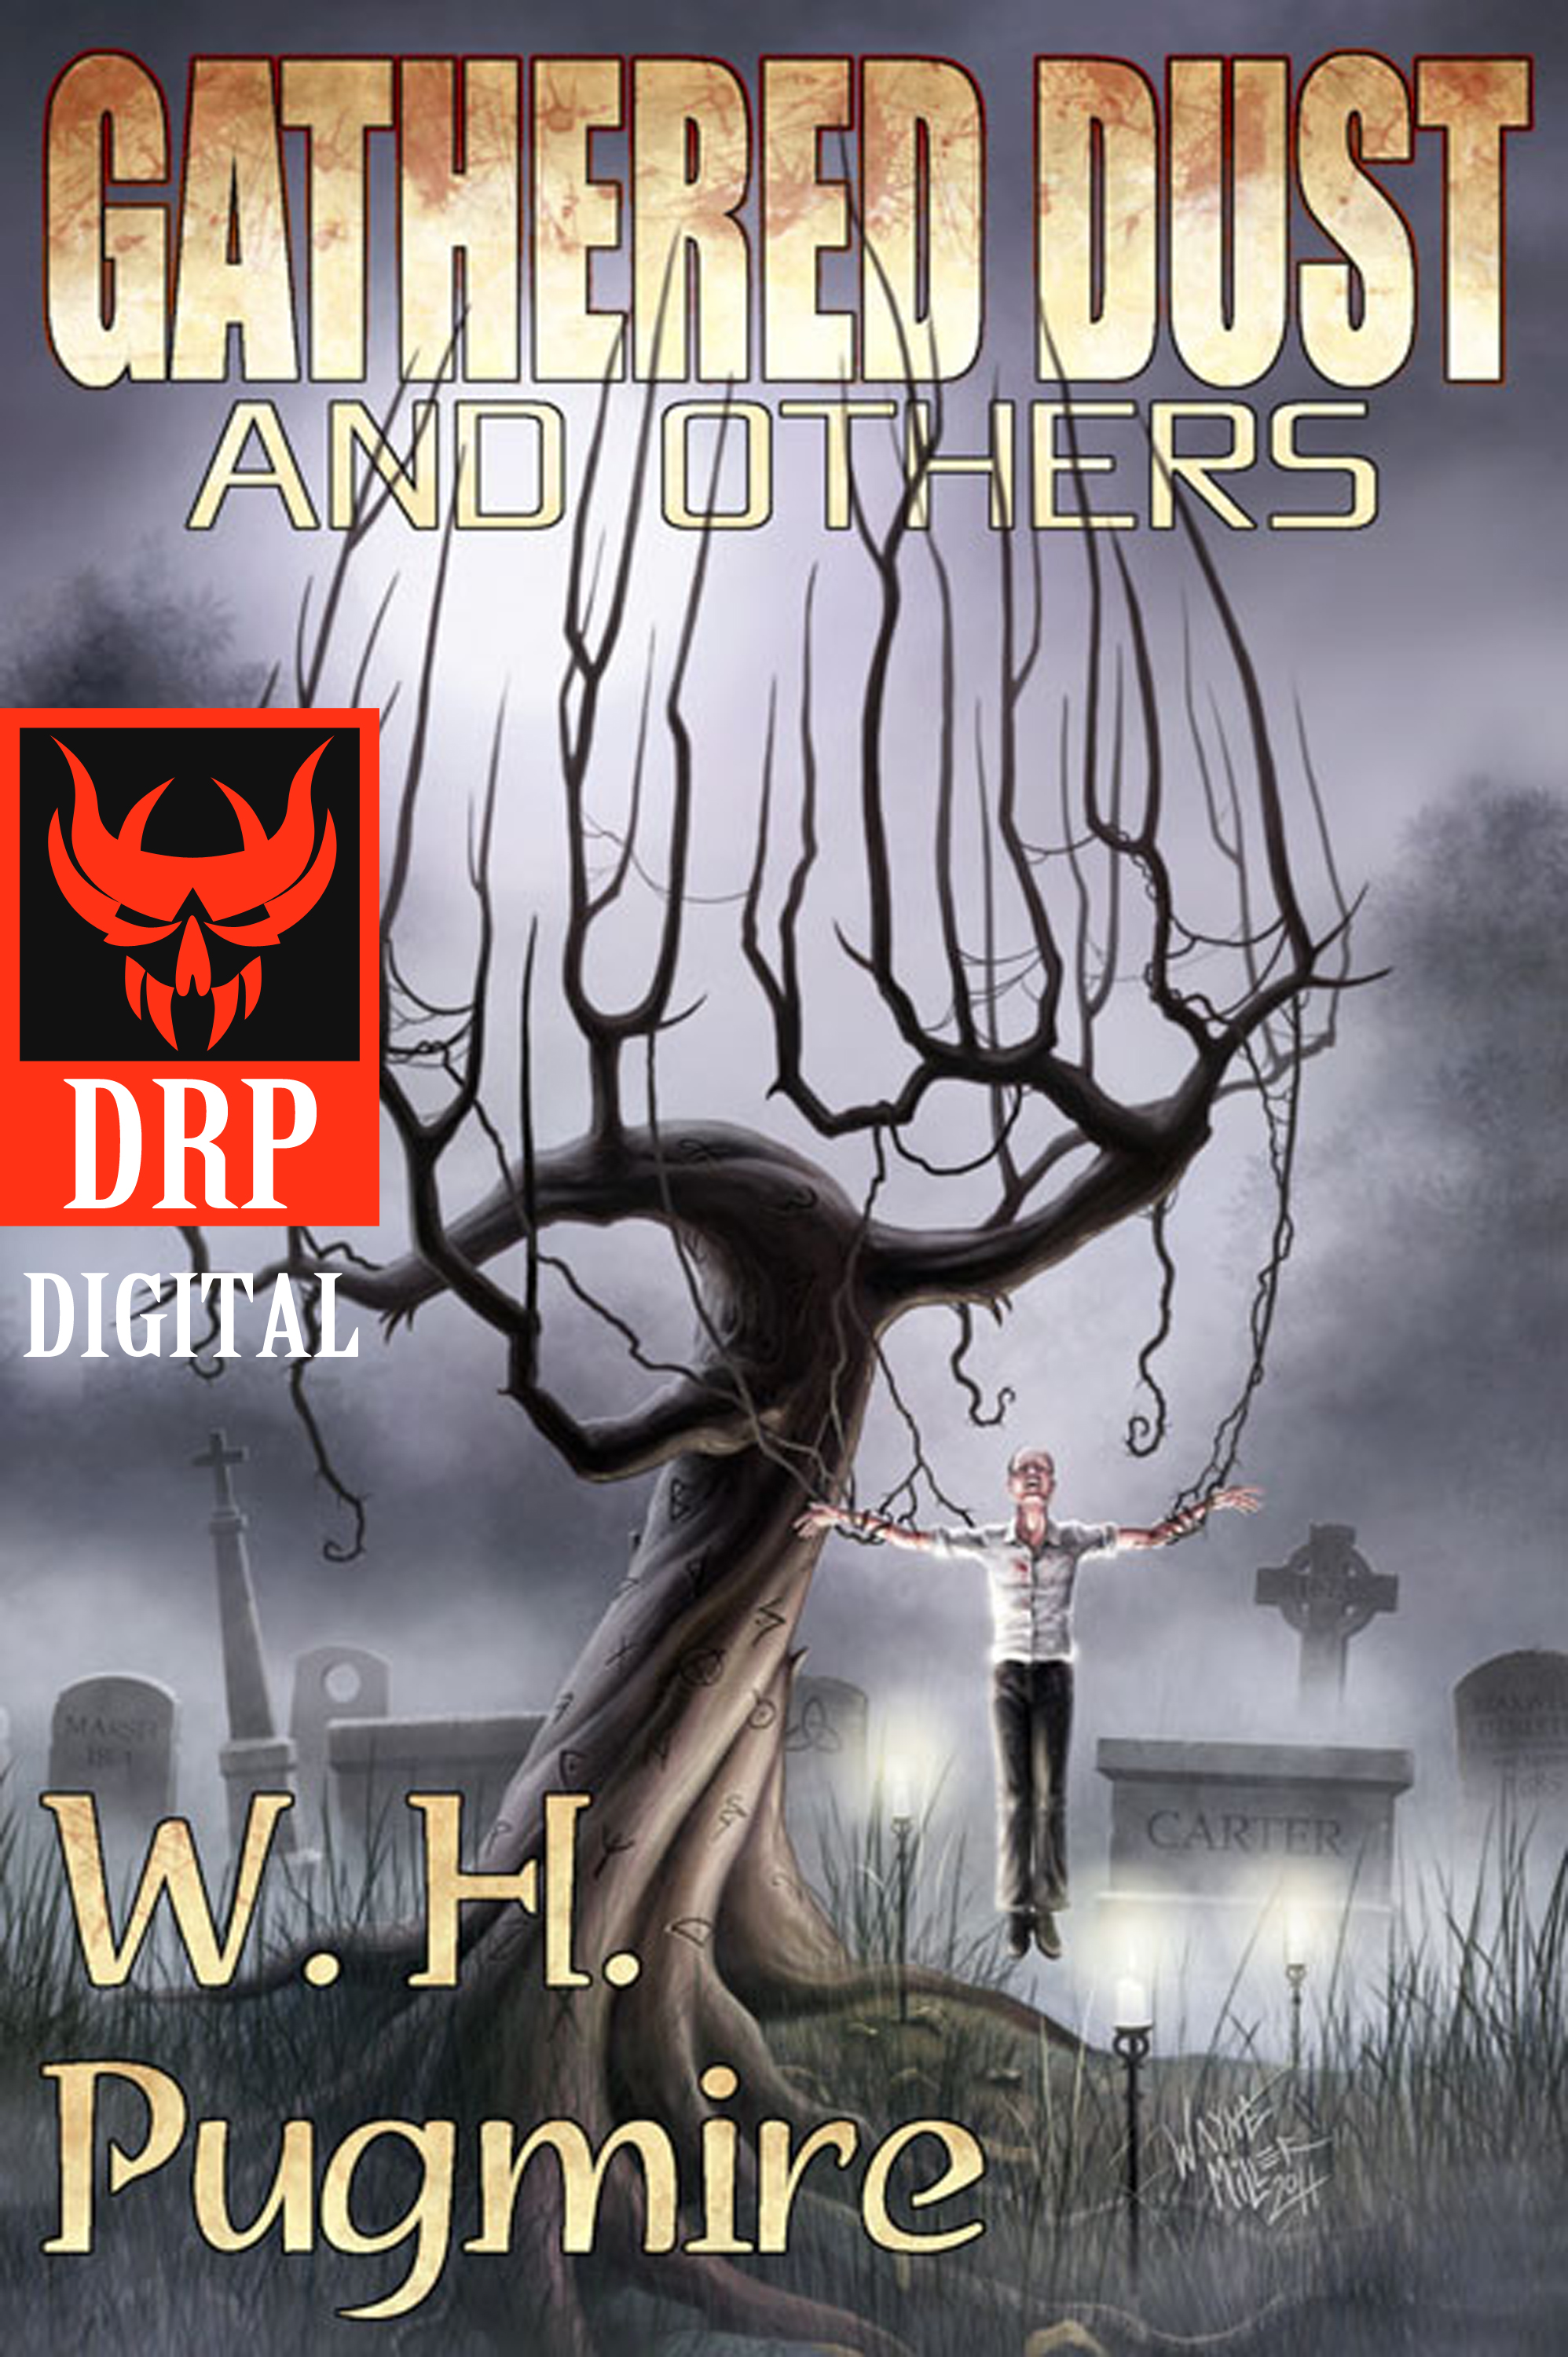 Dark Regions Press - Gathered Dust and Others